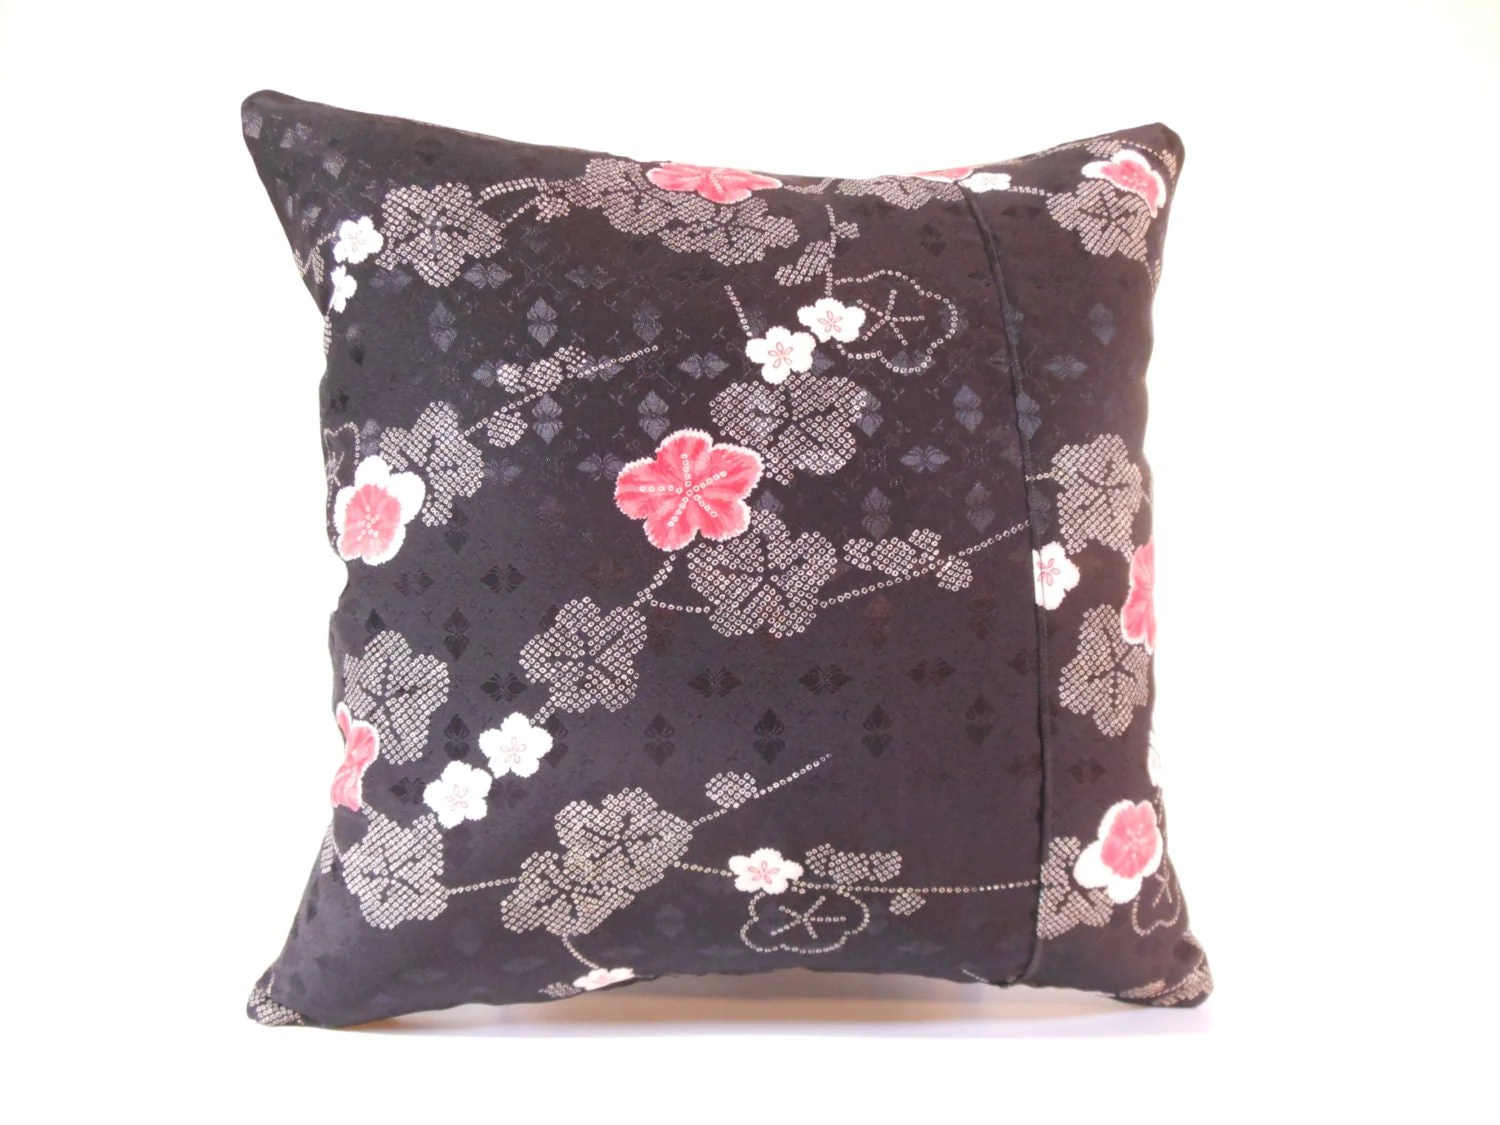 how much fabric to make a sofa cover muji high back reclining open sale 25%off japanese pillow 530 decorative